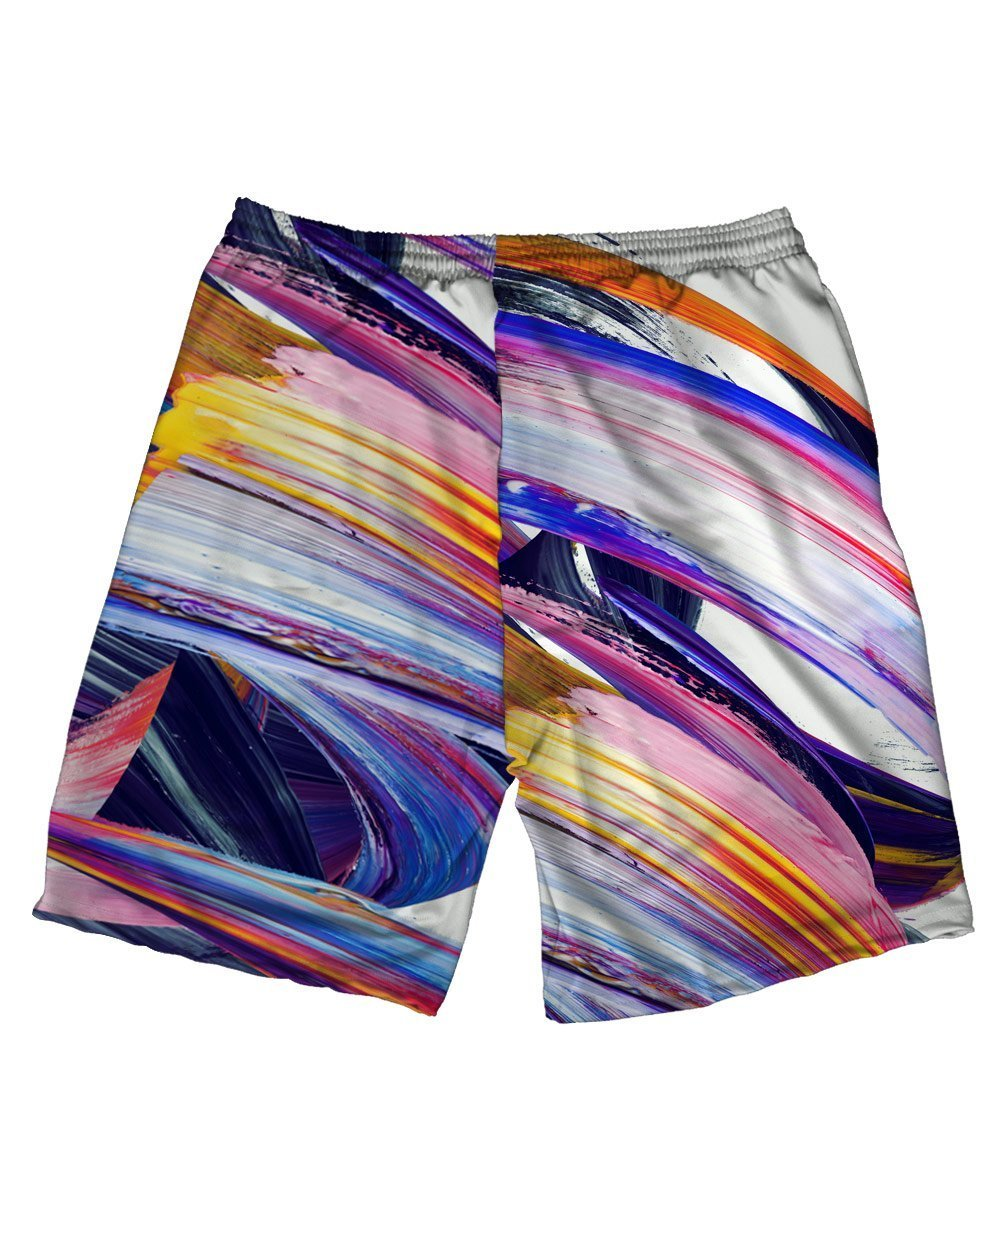 Muse Men's Shorts-Back